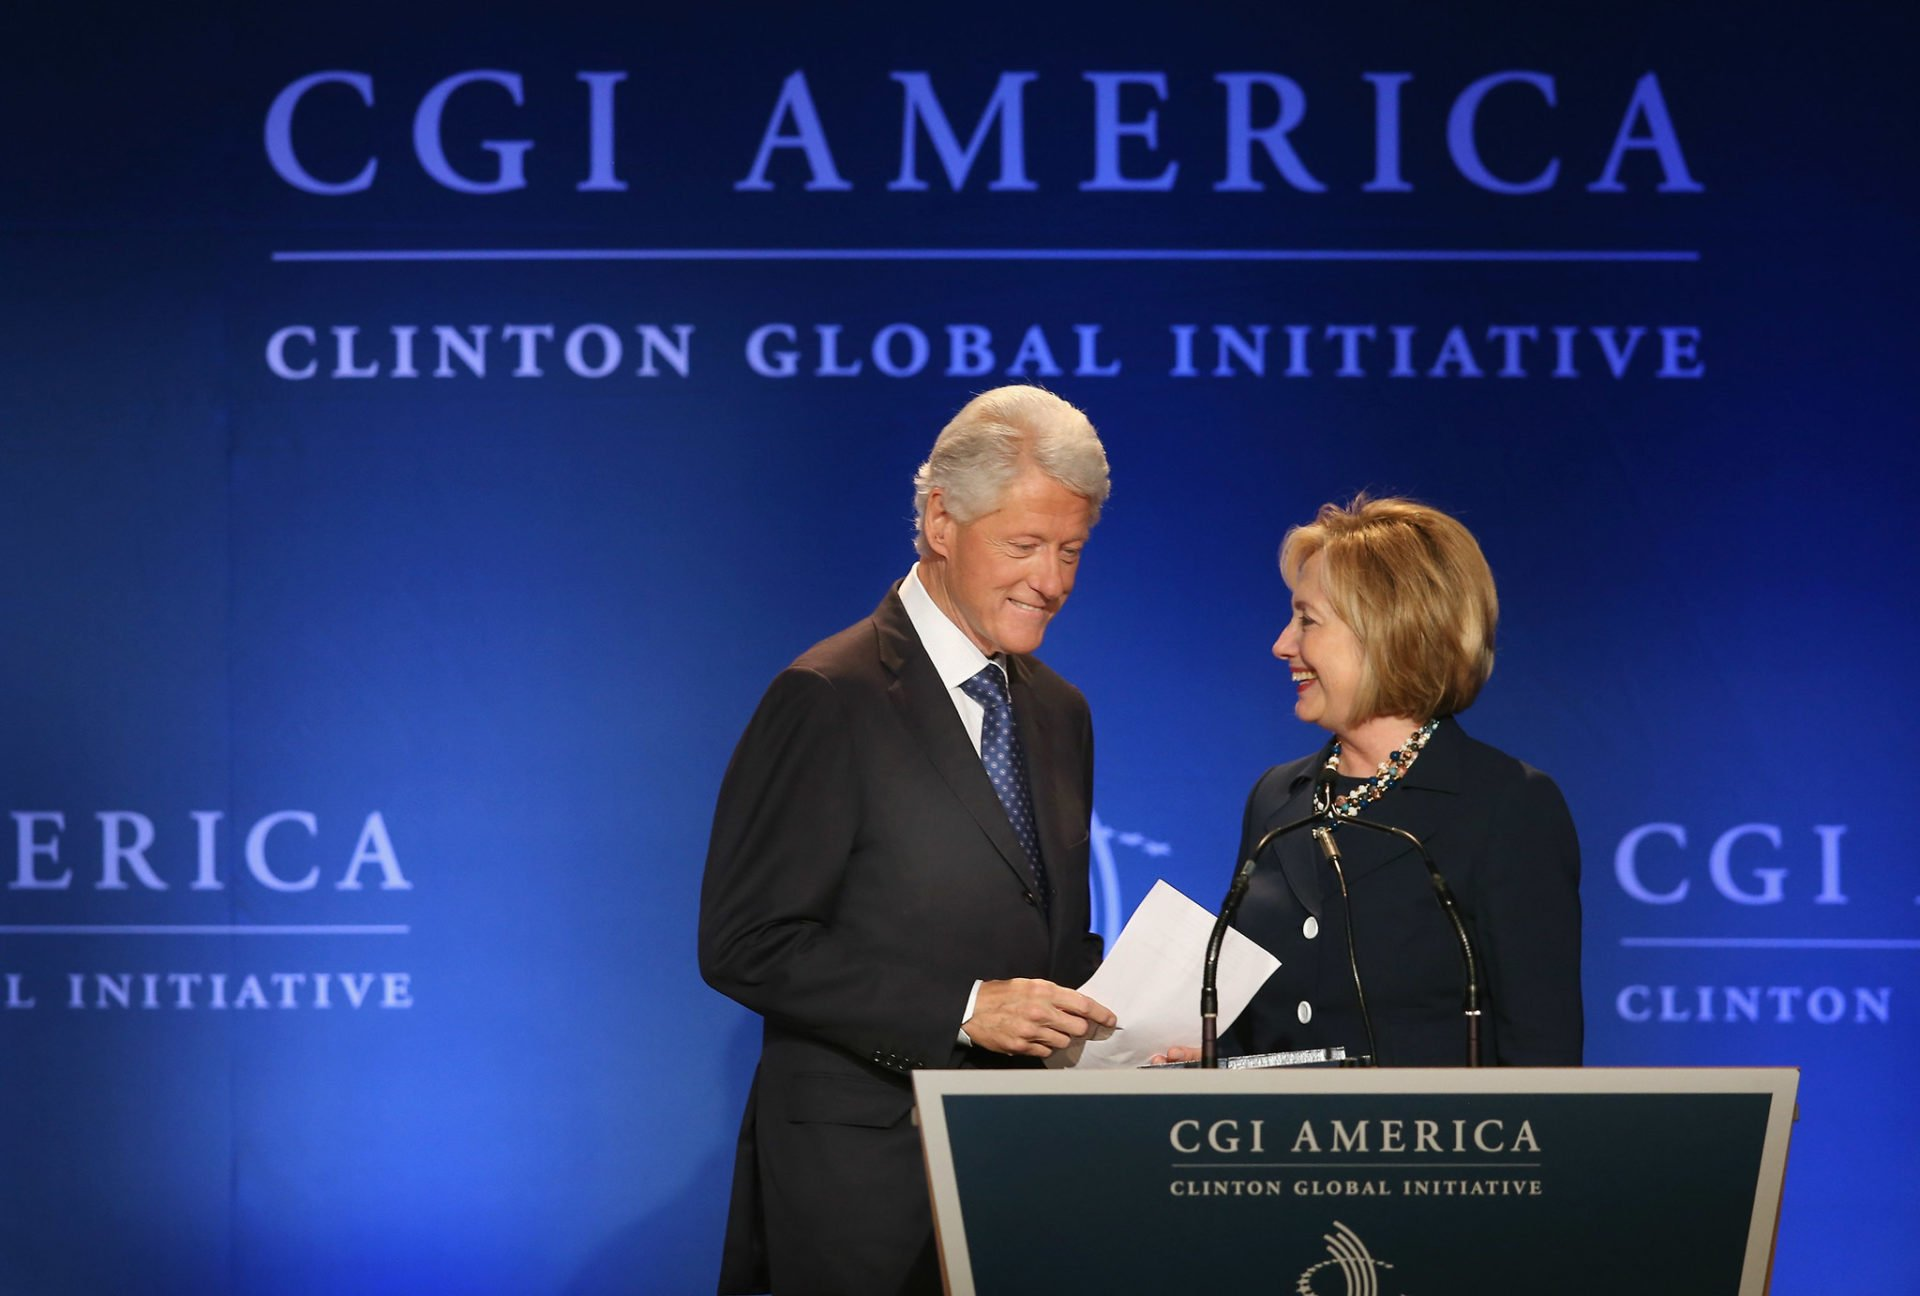 Clinton Foundation Wont Return Donations From Accused Sexual Harasser